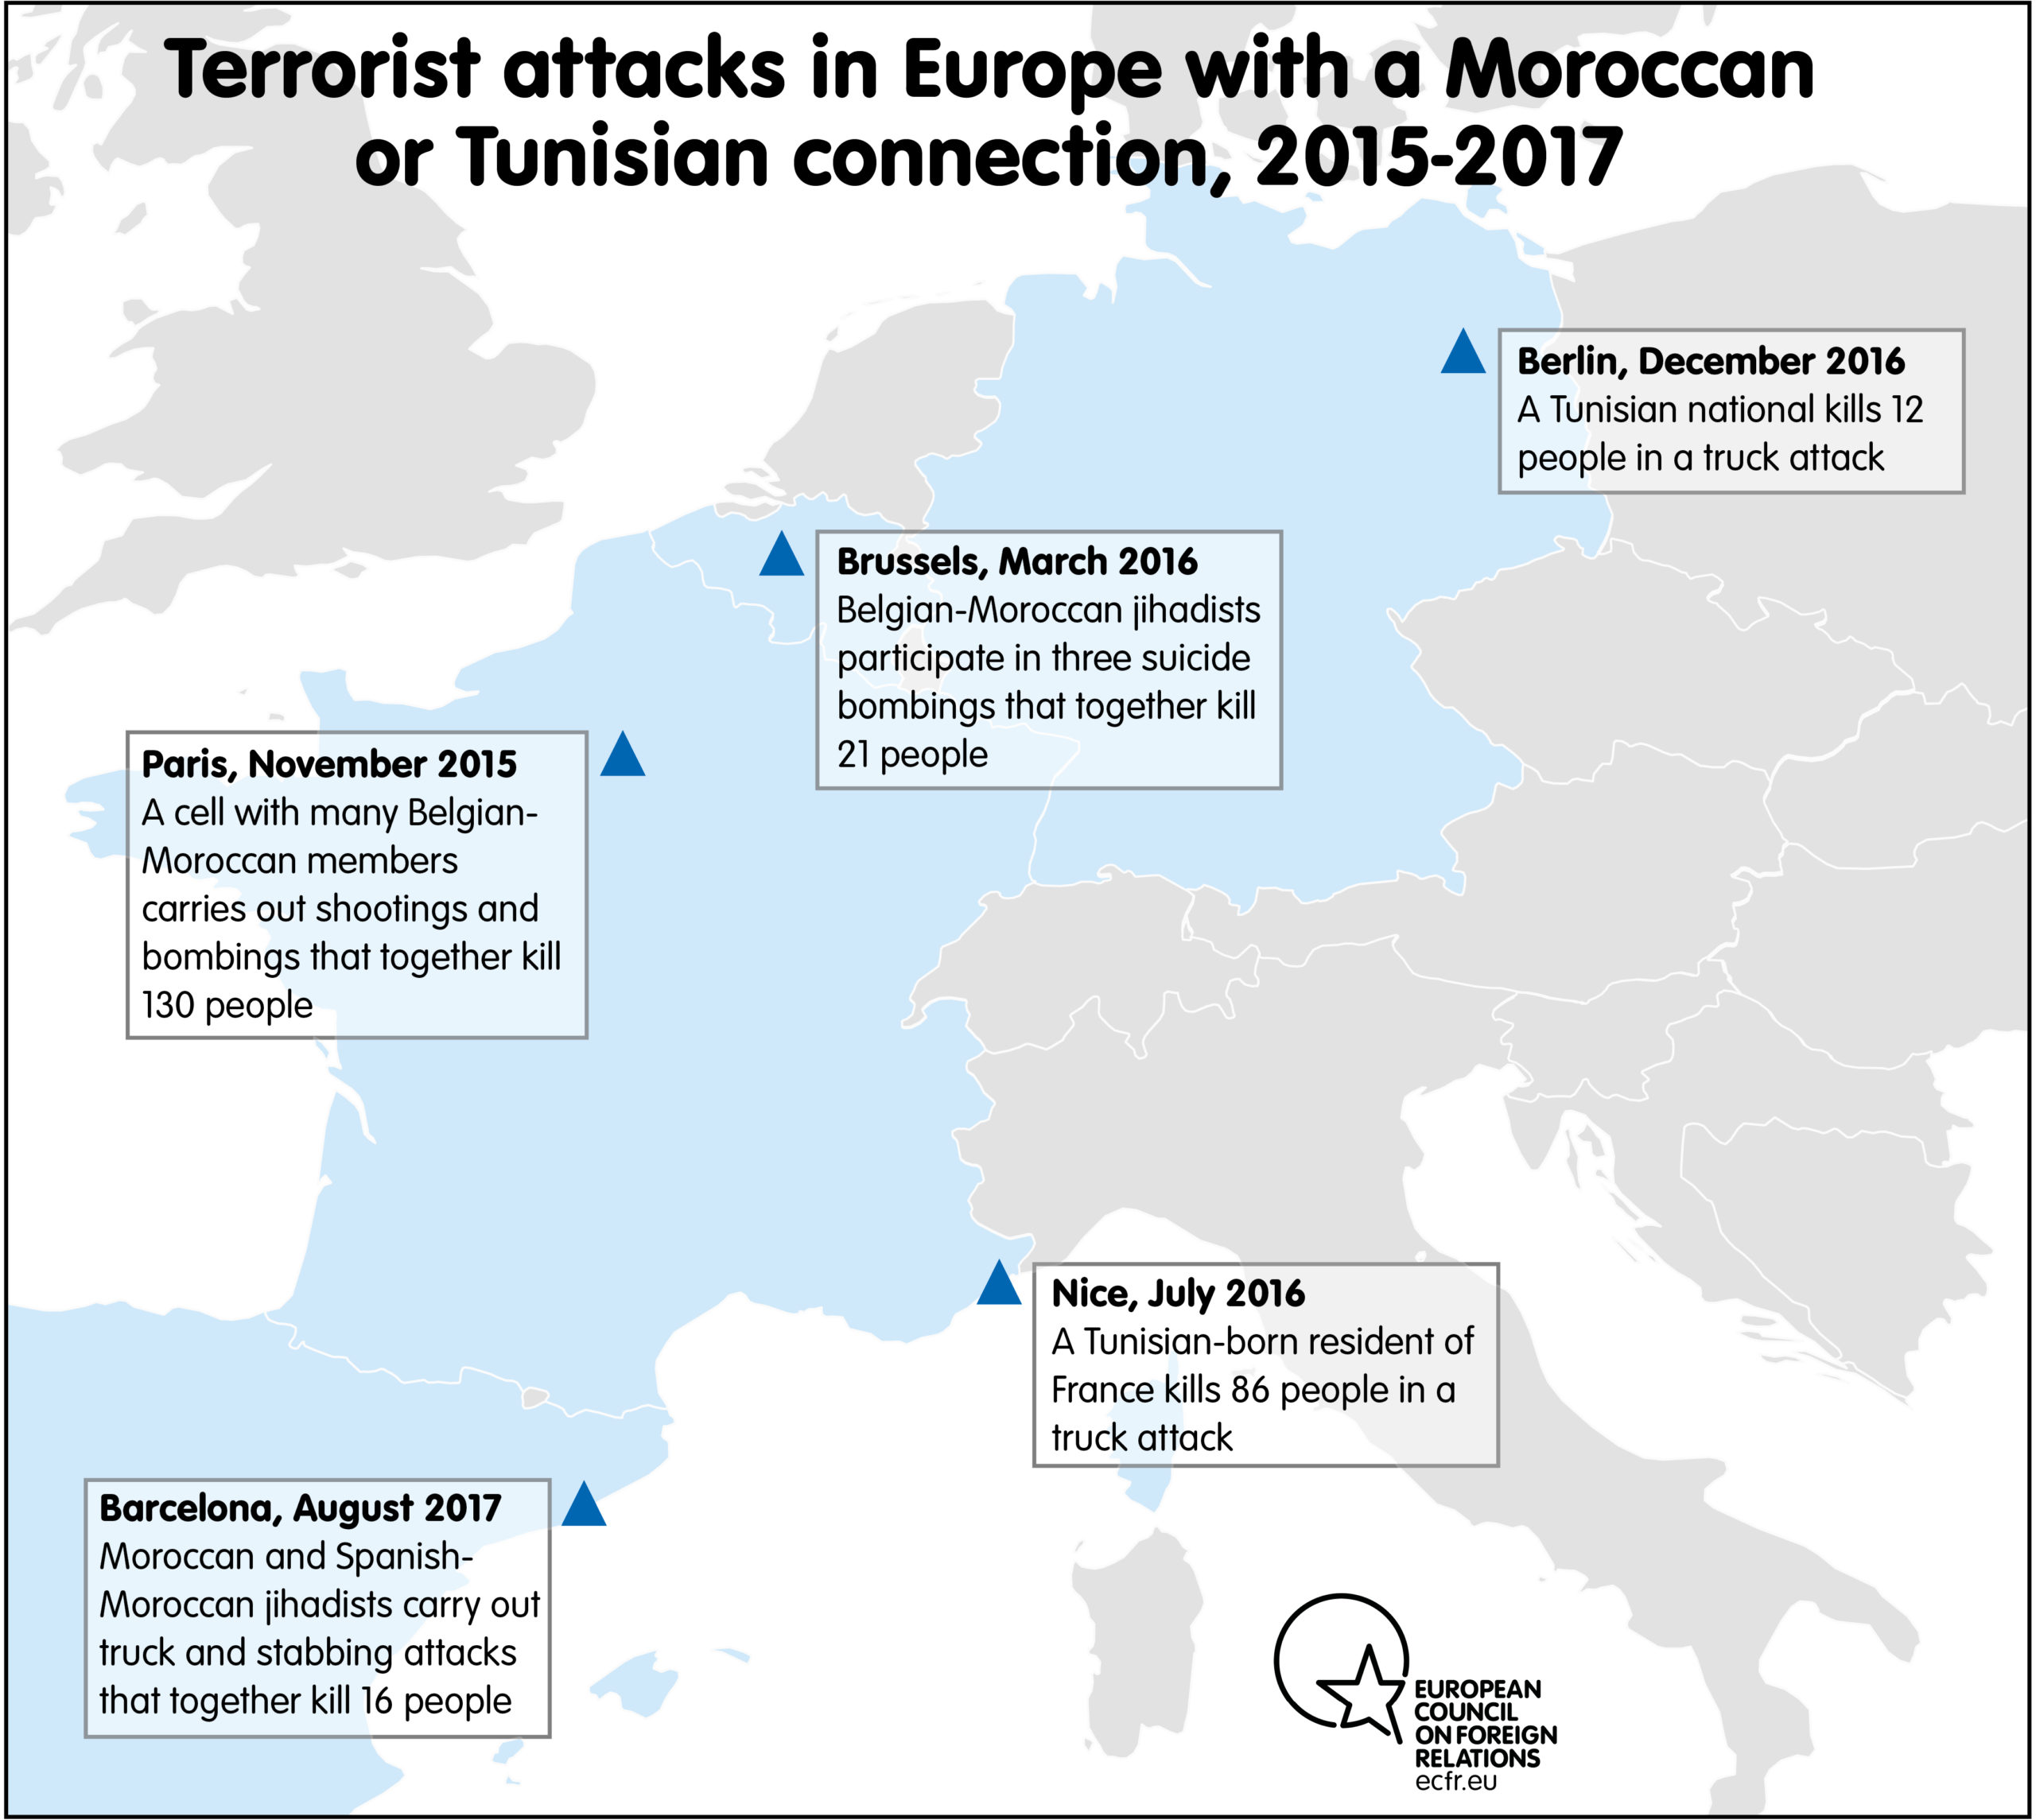 Terrorist attacks in Europe with a Moroccan or Tunisian connection